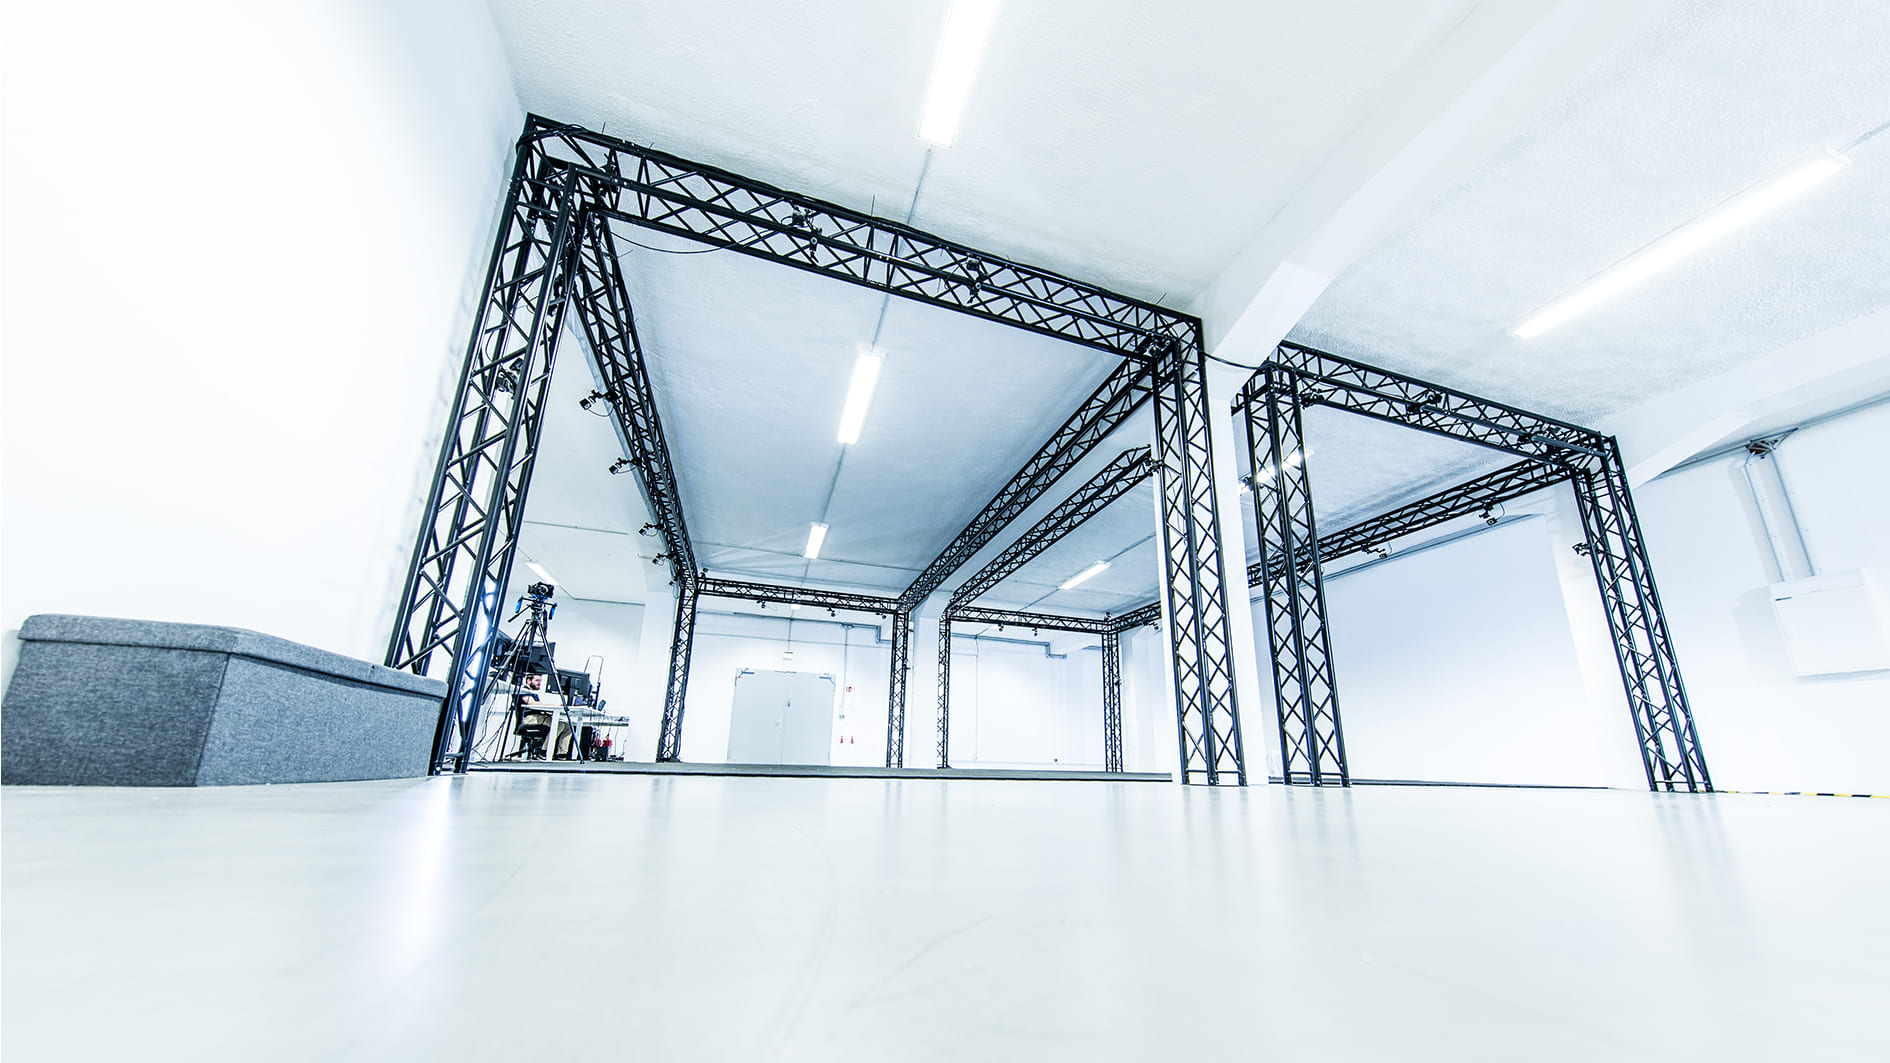 Our motion capture studio in Berlin